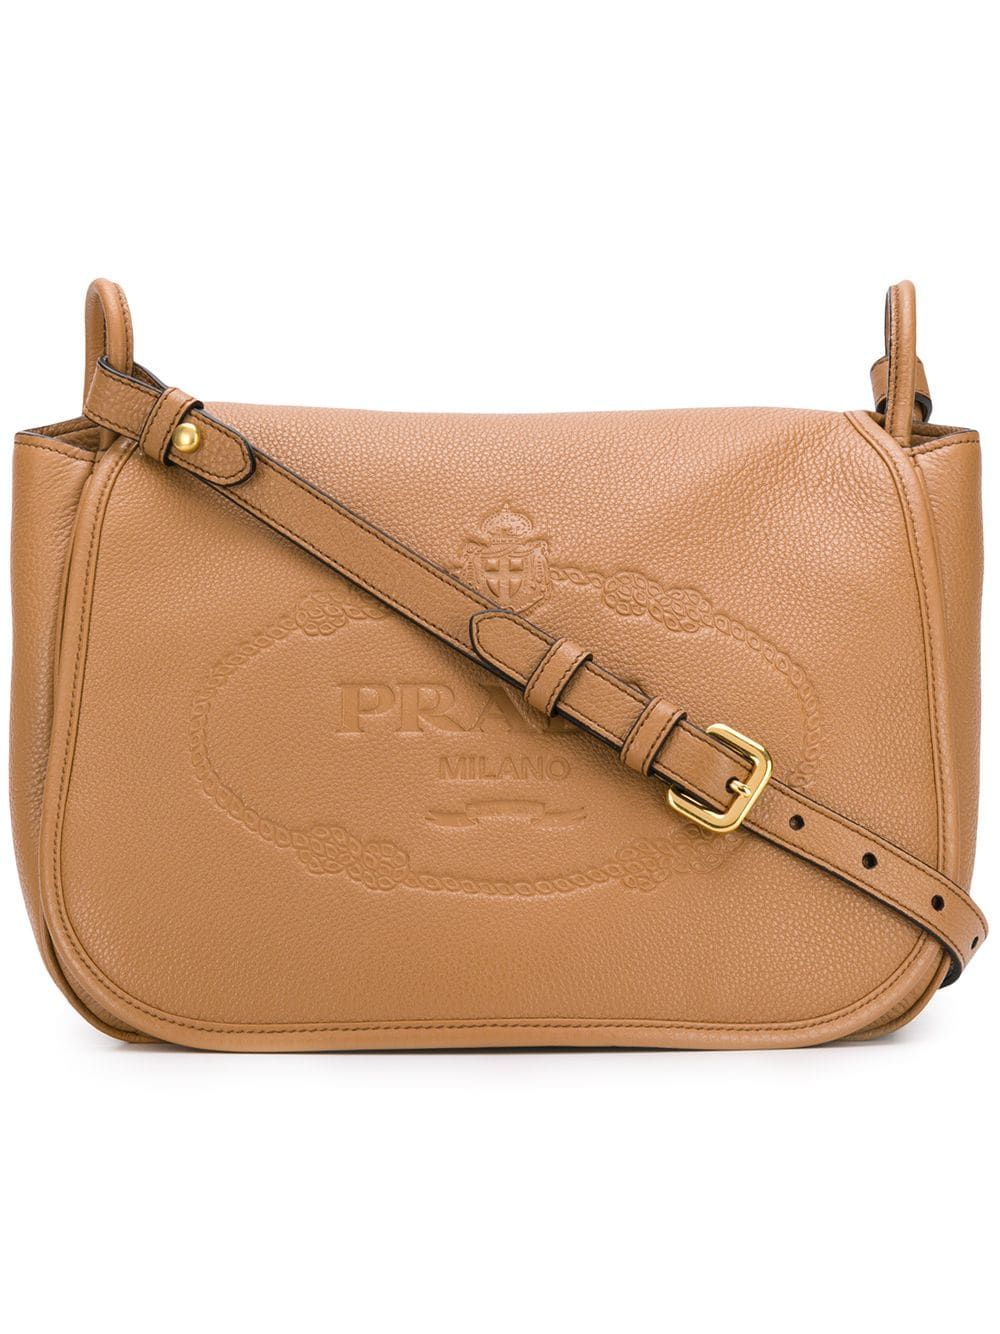 52b7affb18d PRADA PRADA EMBOSSED LOGO SHOULDER BAG - BROWN. #prada #bags #shoulder bags  #leather